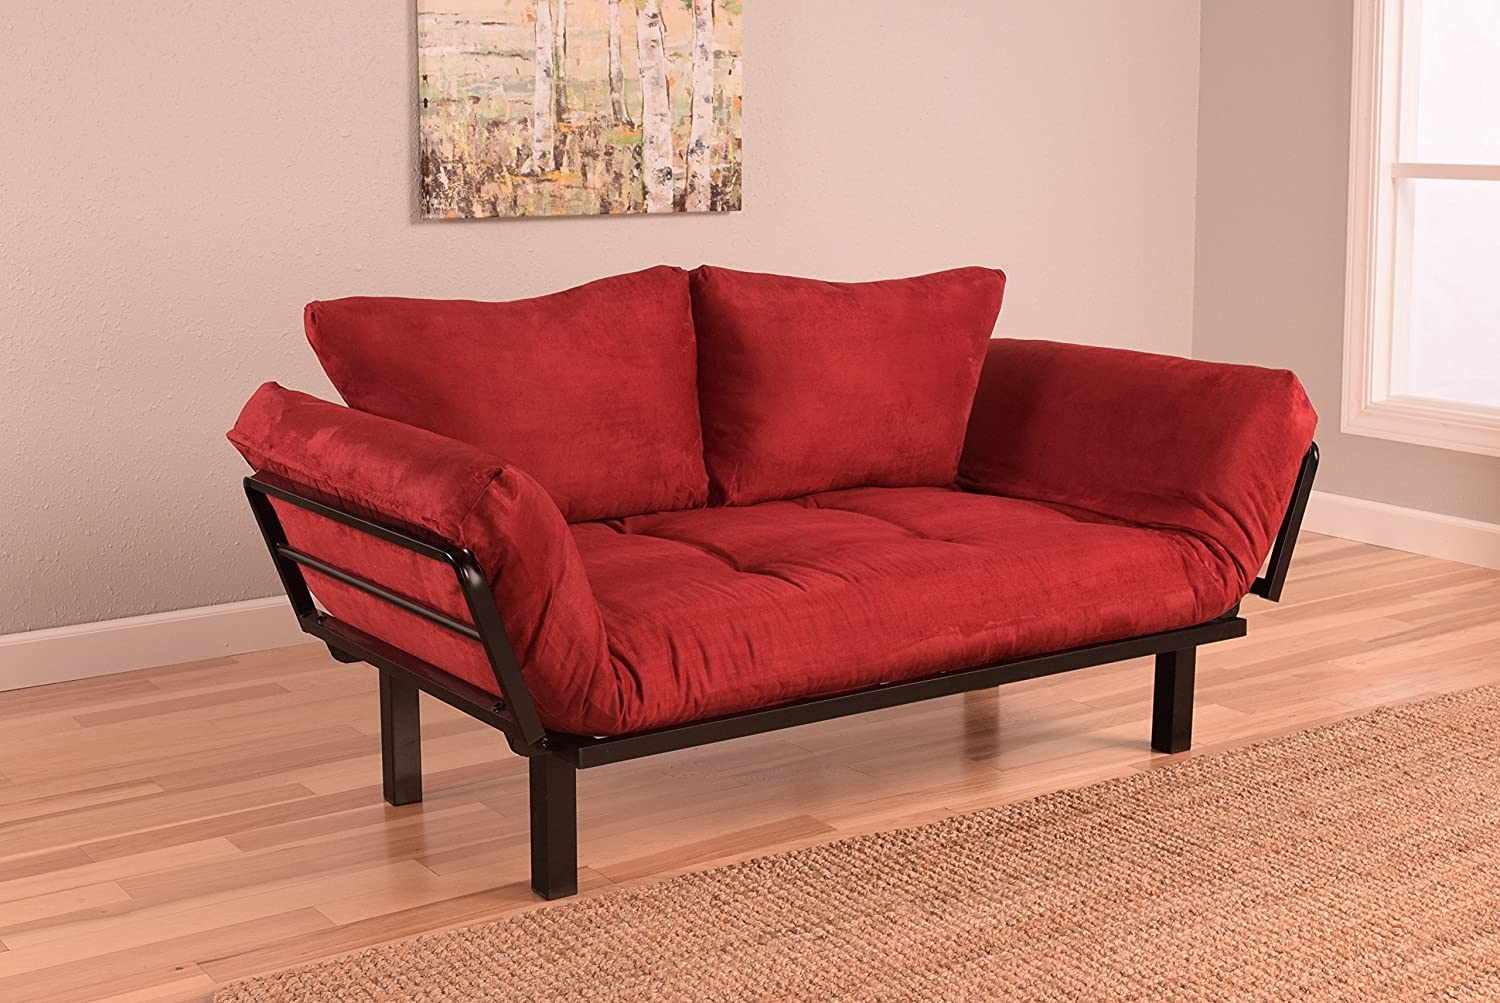 Genial Amazon.com: Best Futon Lounger Sit Lounge Sleep Smaller Size Furniture Is  Perfect For College Dorm Bedroom Studio Apartment Guest Room Covered Patio  Porch .